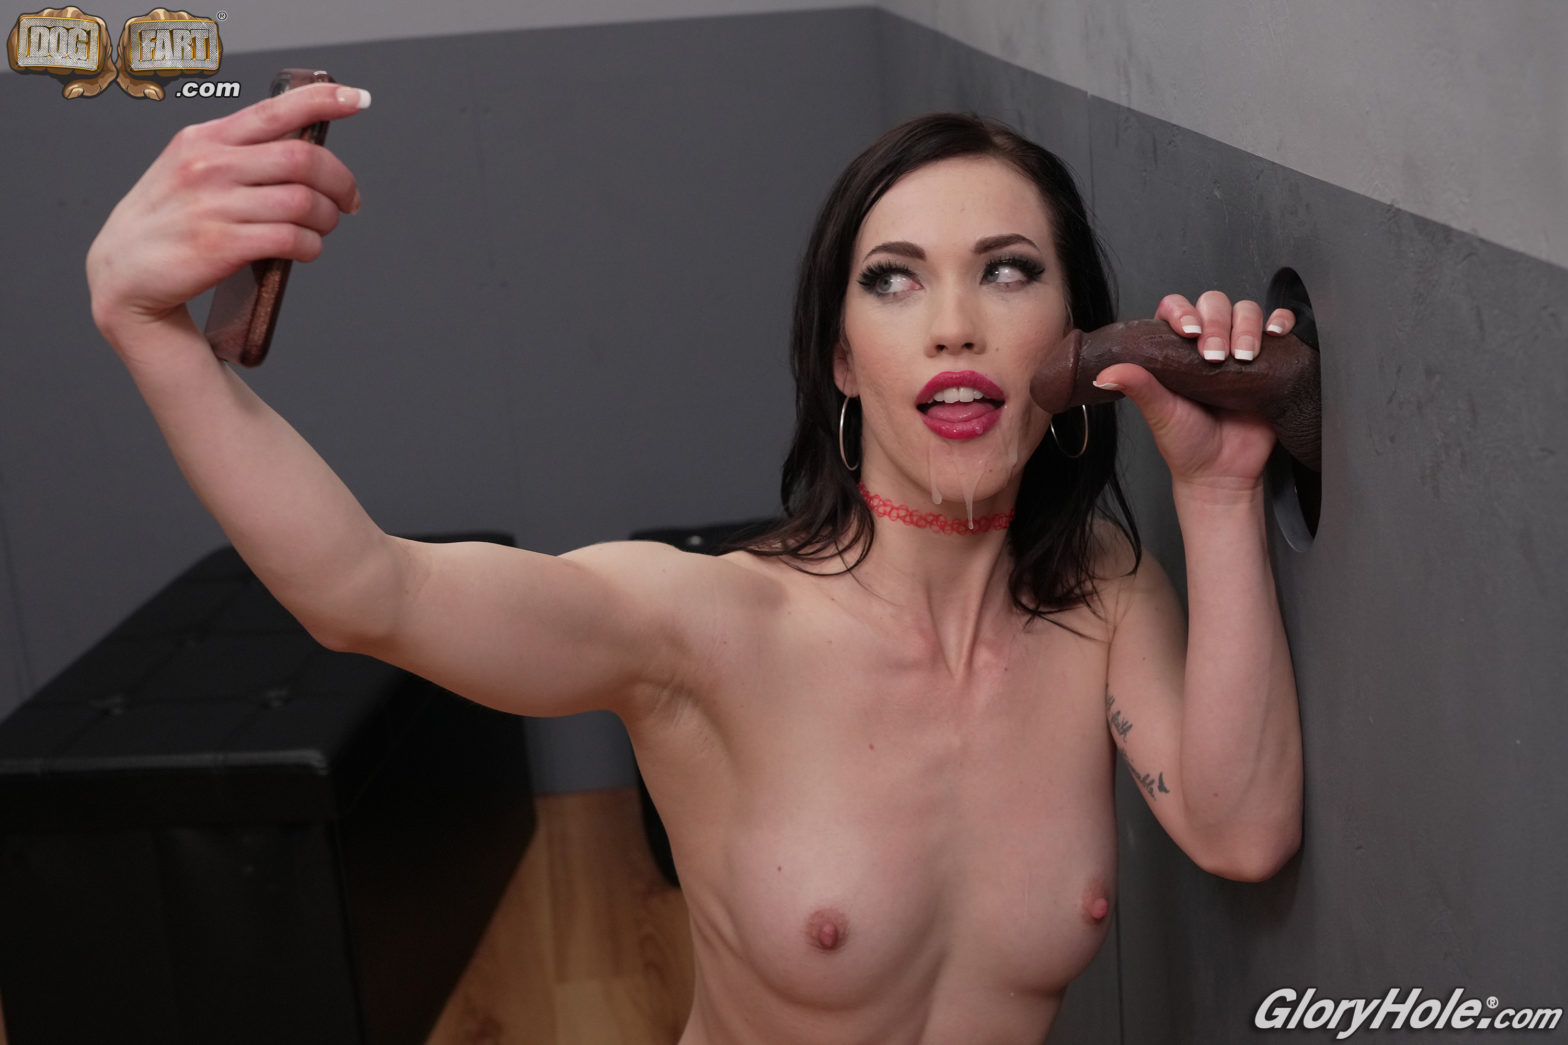 Diana Grace taking a cumshot selfie